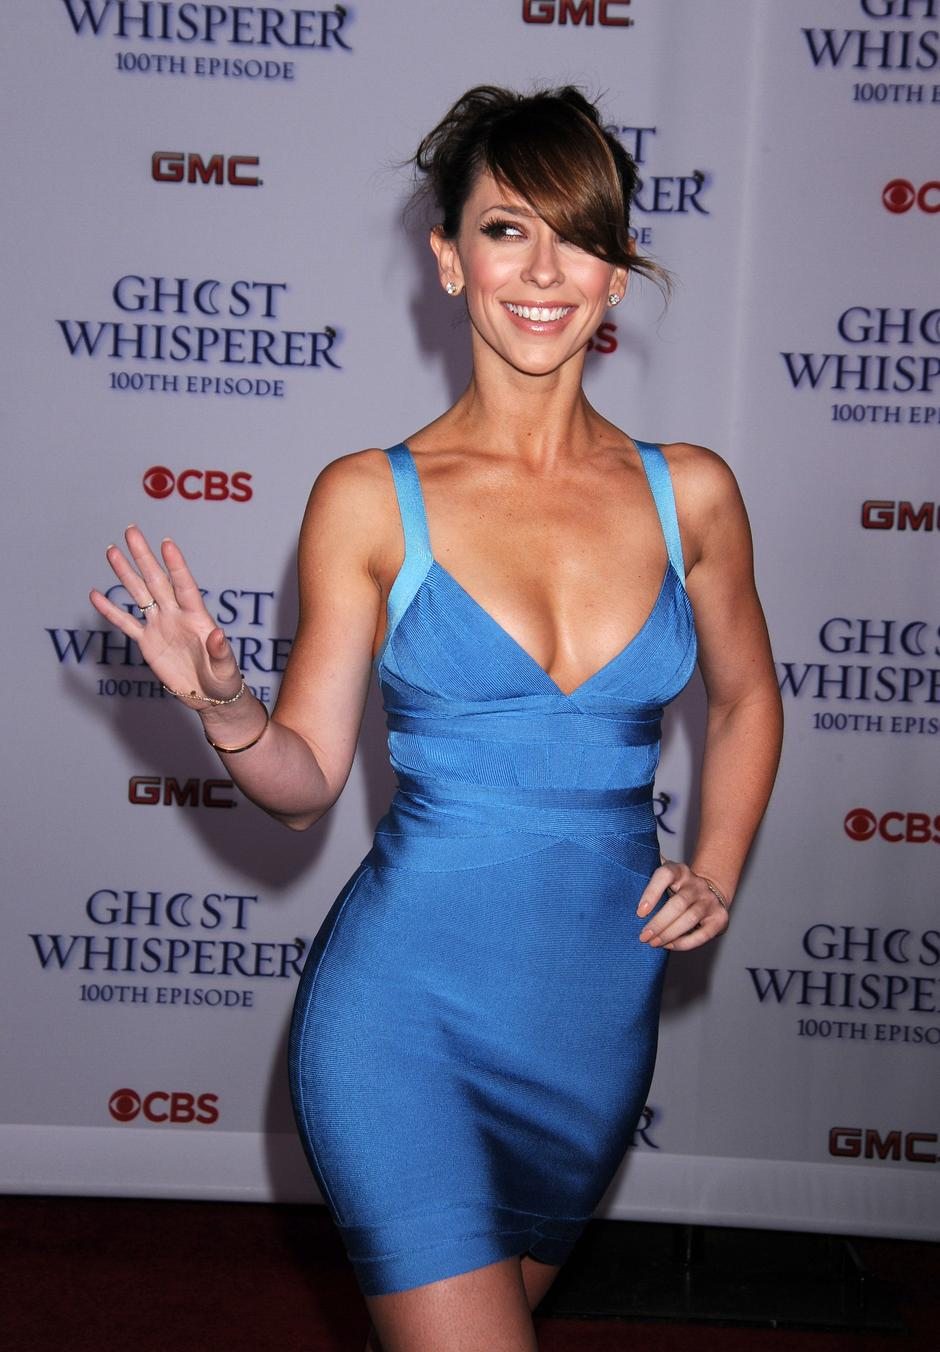 'Ghost Whisperer' 100th Episode celebration - Hollywood | Autor: Tammie Arroyo/Press Association/PIXSELL